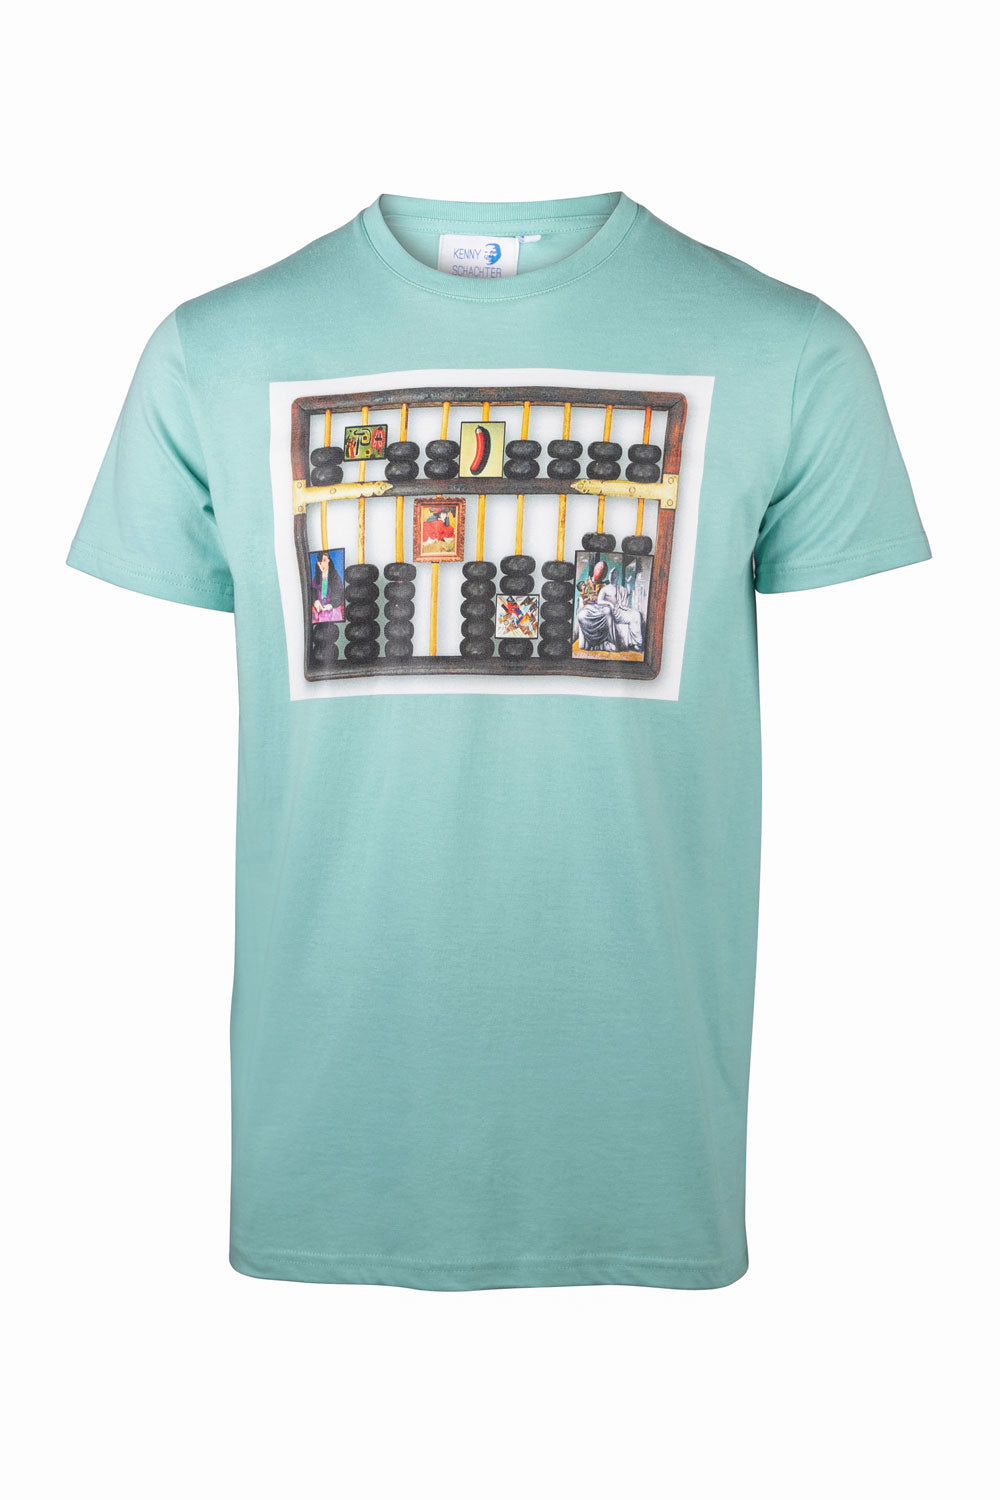 Kenny Schachter 'Abacus' Graphic T-Shirt